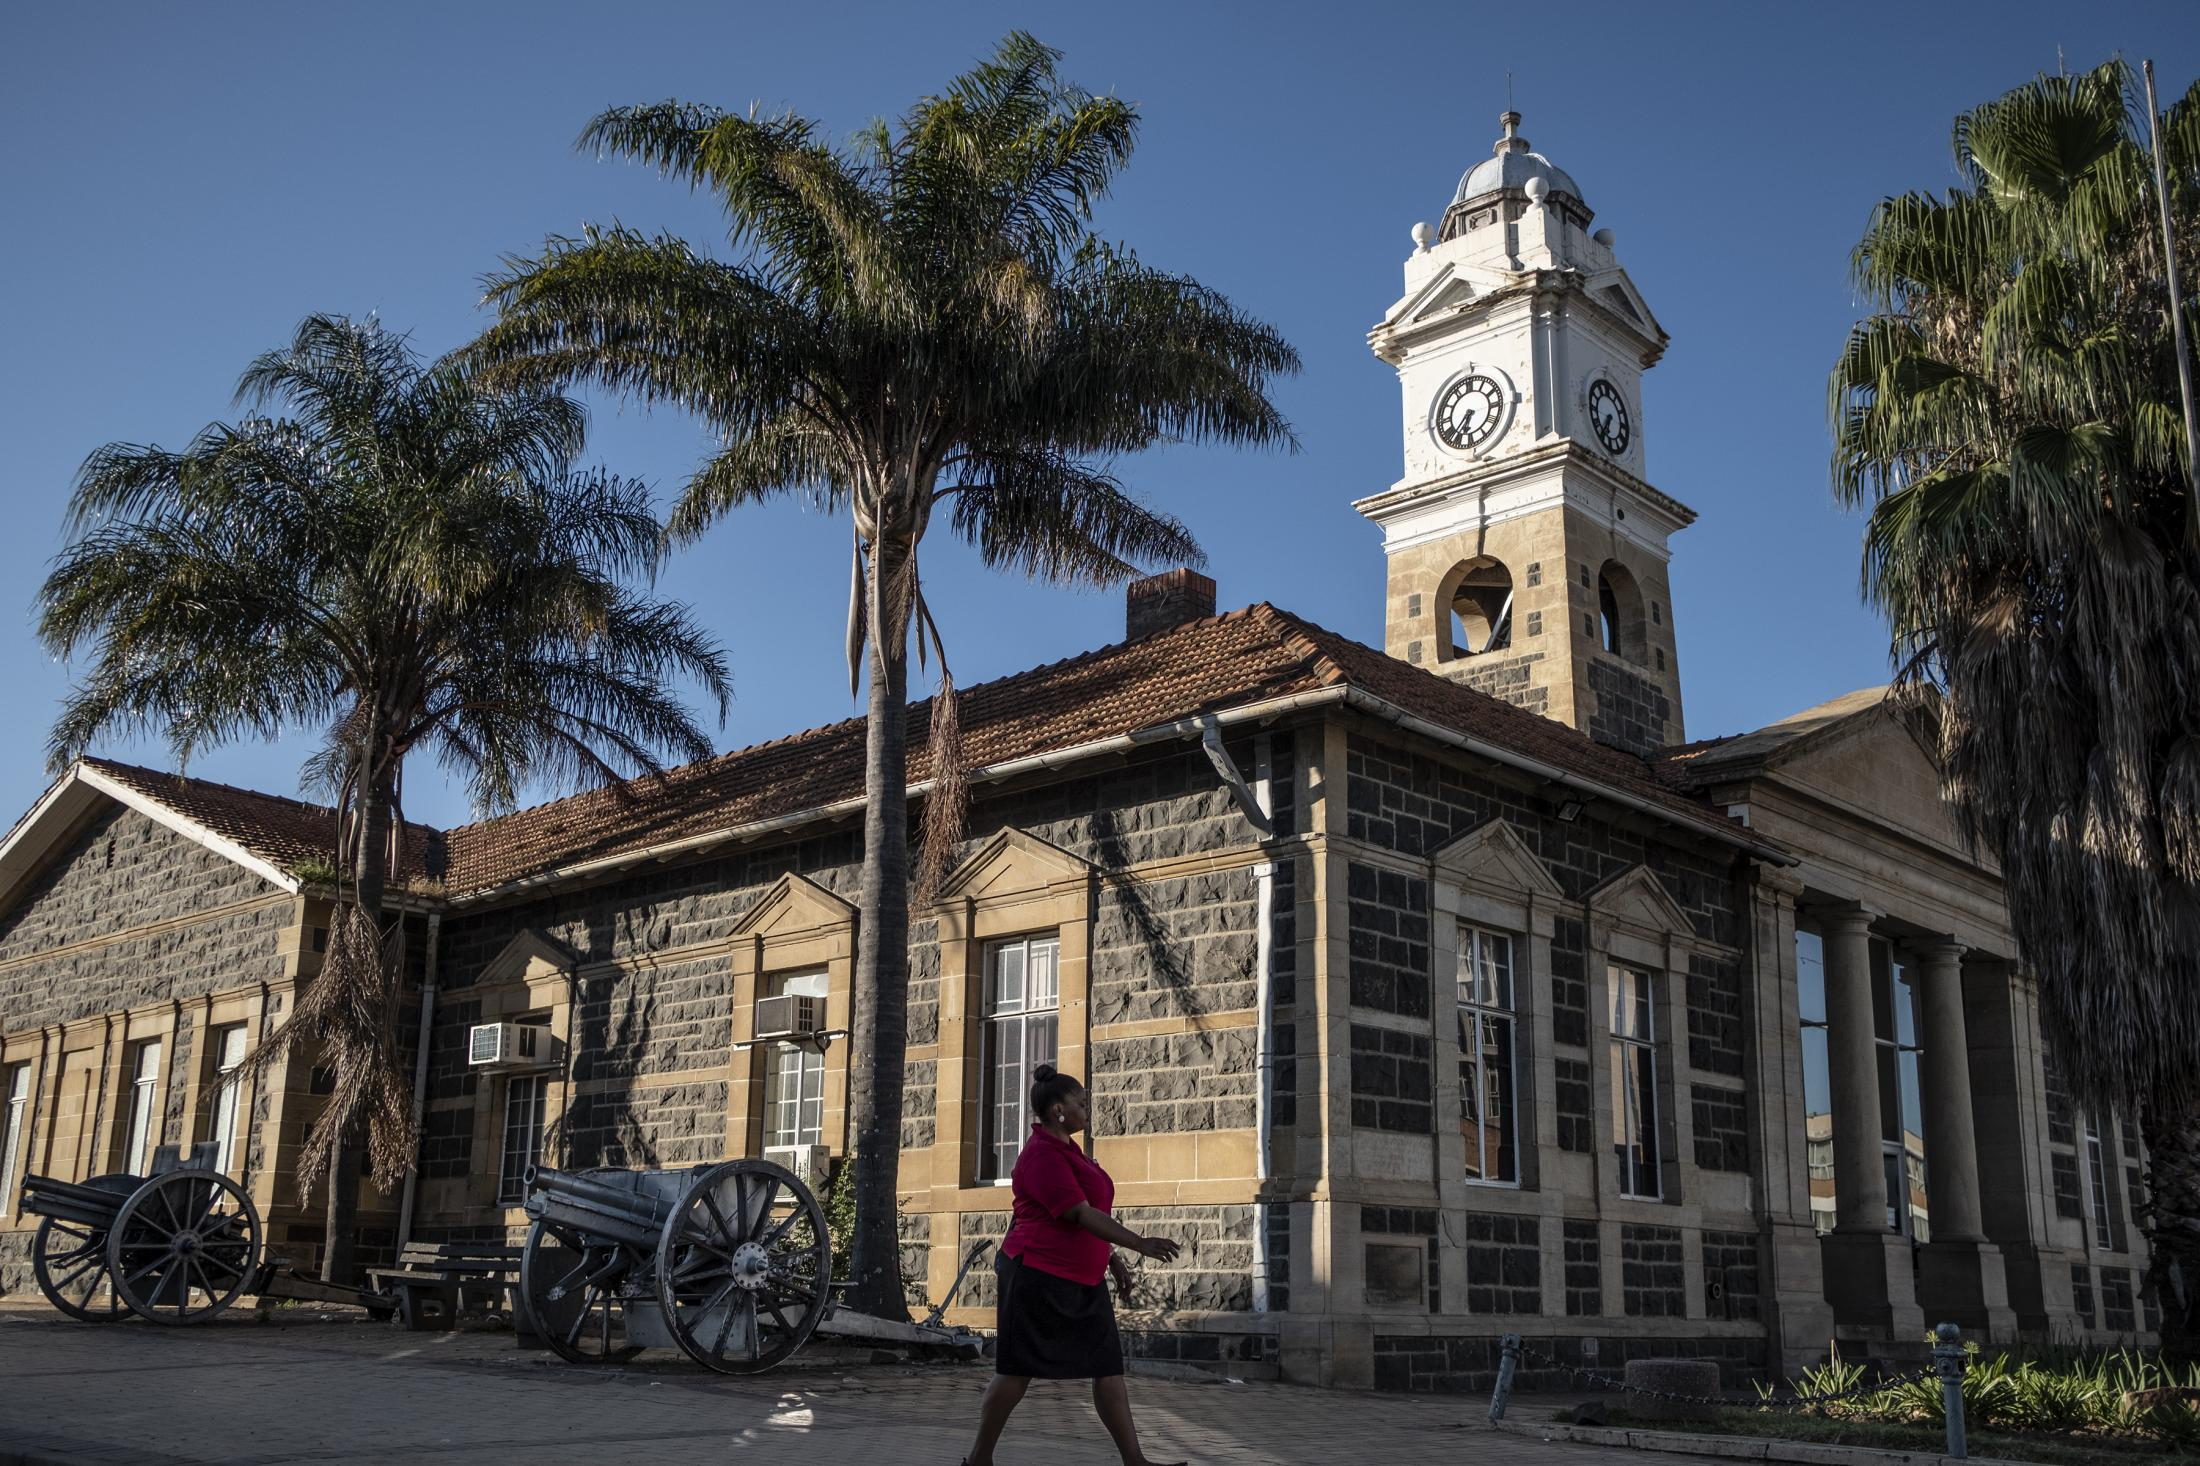 16 February 2020: The Town Hall is surrounded by canons from the Anglo-boer wars which was fought in the in Ladysmith, Kwa_Zulu Natal.